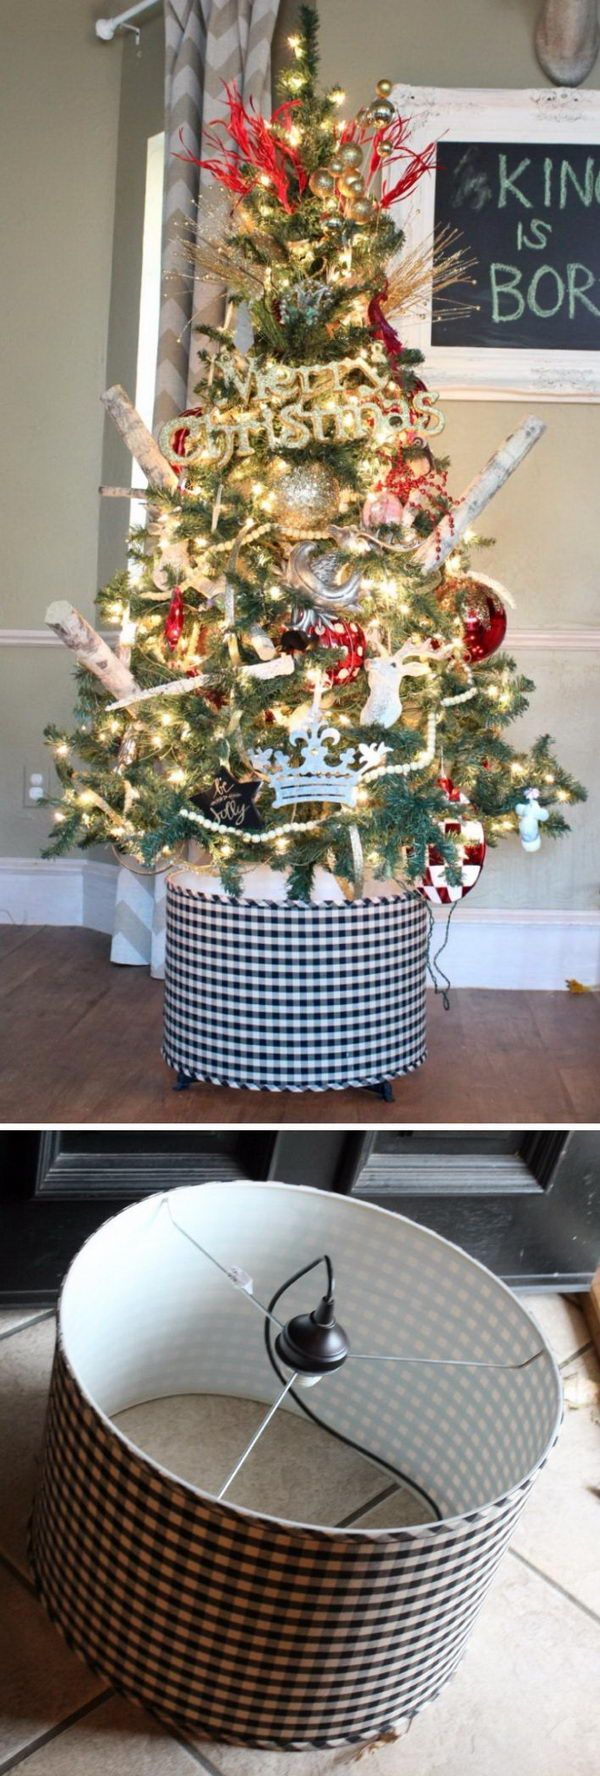 Black And White Gingham Drum Light Fixture Christmas Tree Stand.